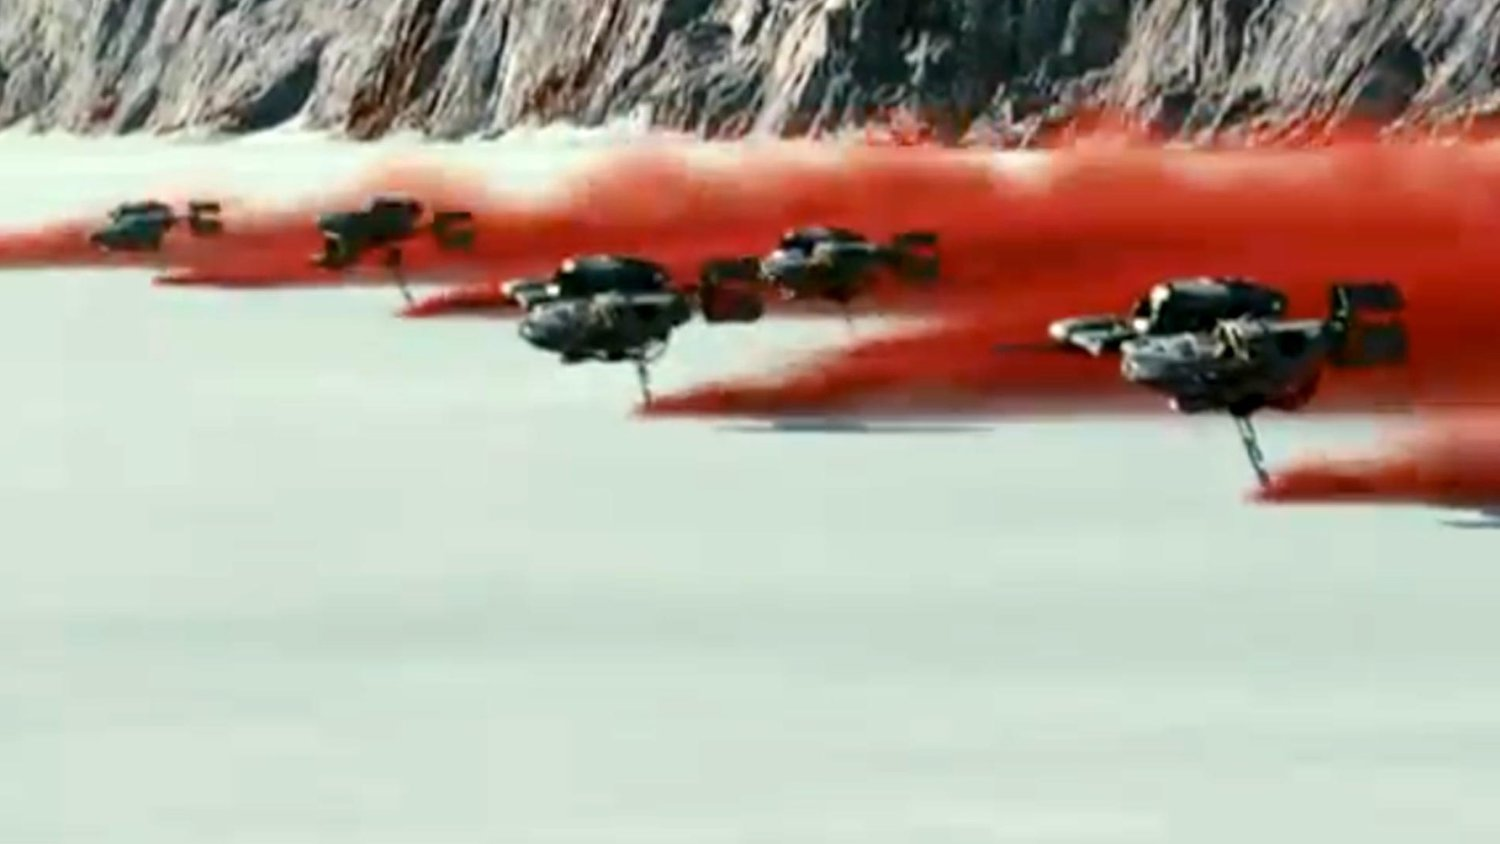 Details Revealed on a New Planet Being Introduced in STAR WARS: THE LAST JEDI